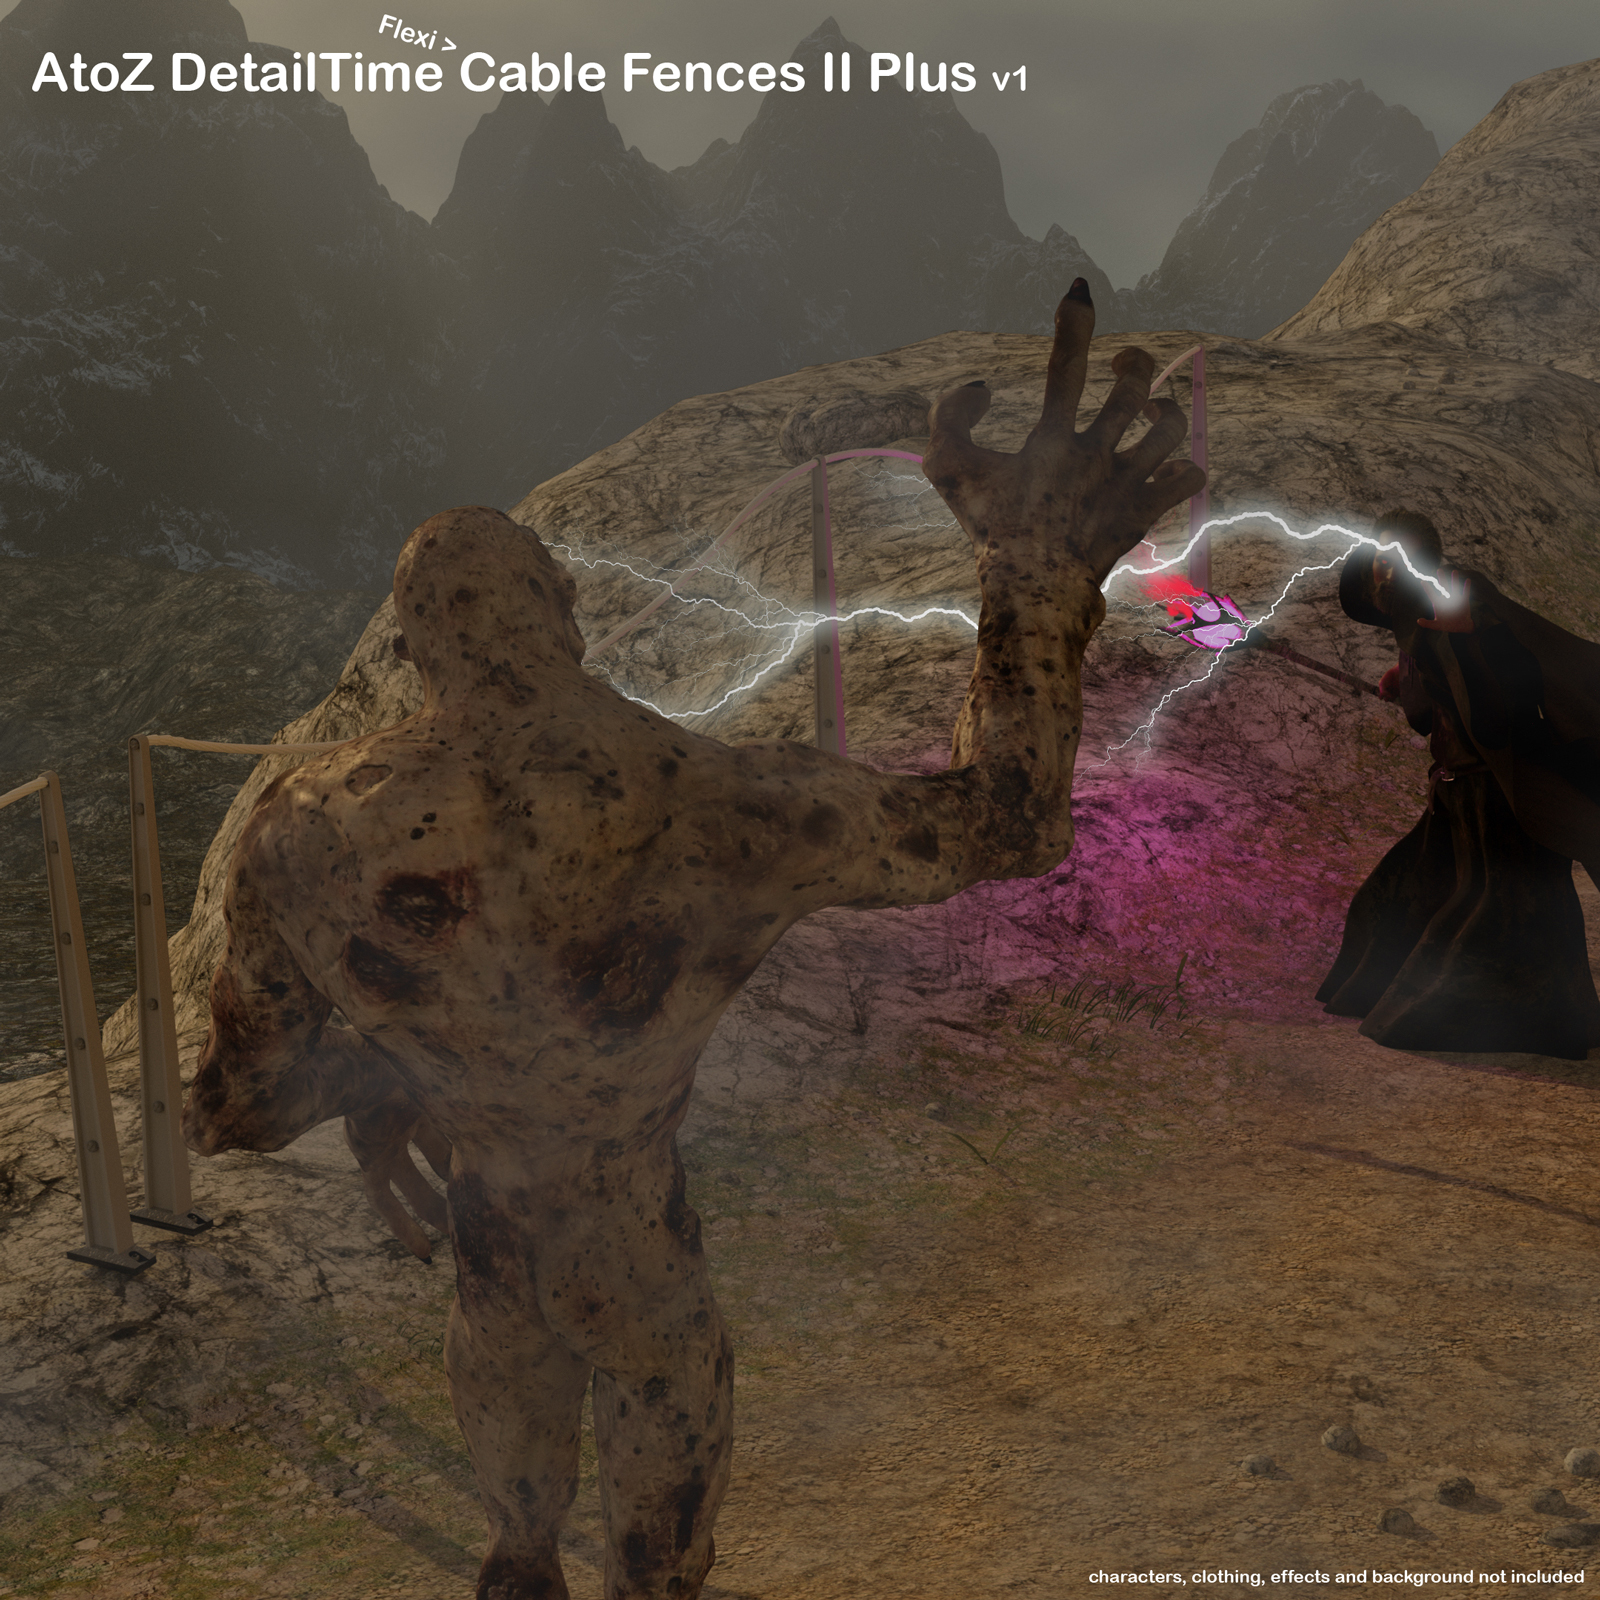 AtoZ DetailTime Cable Fences II v1 for Poser with OBJs by AtoZ